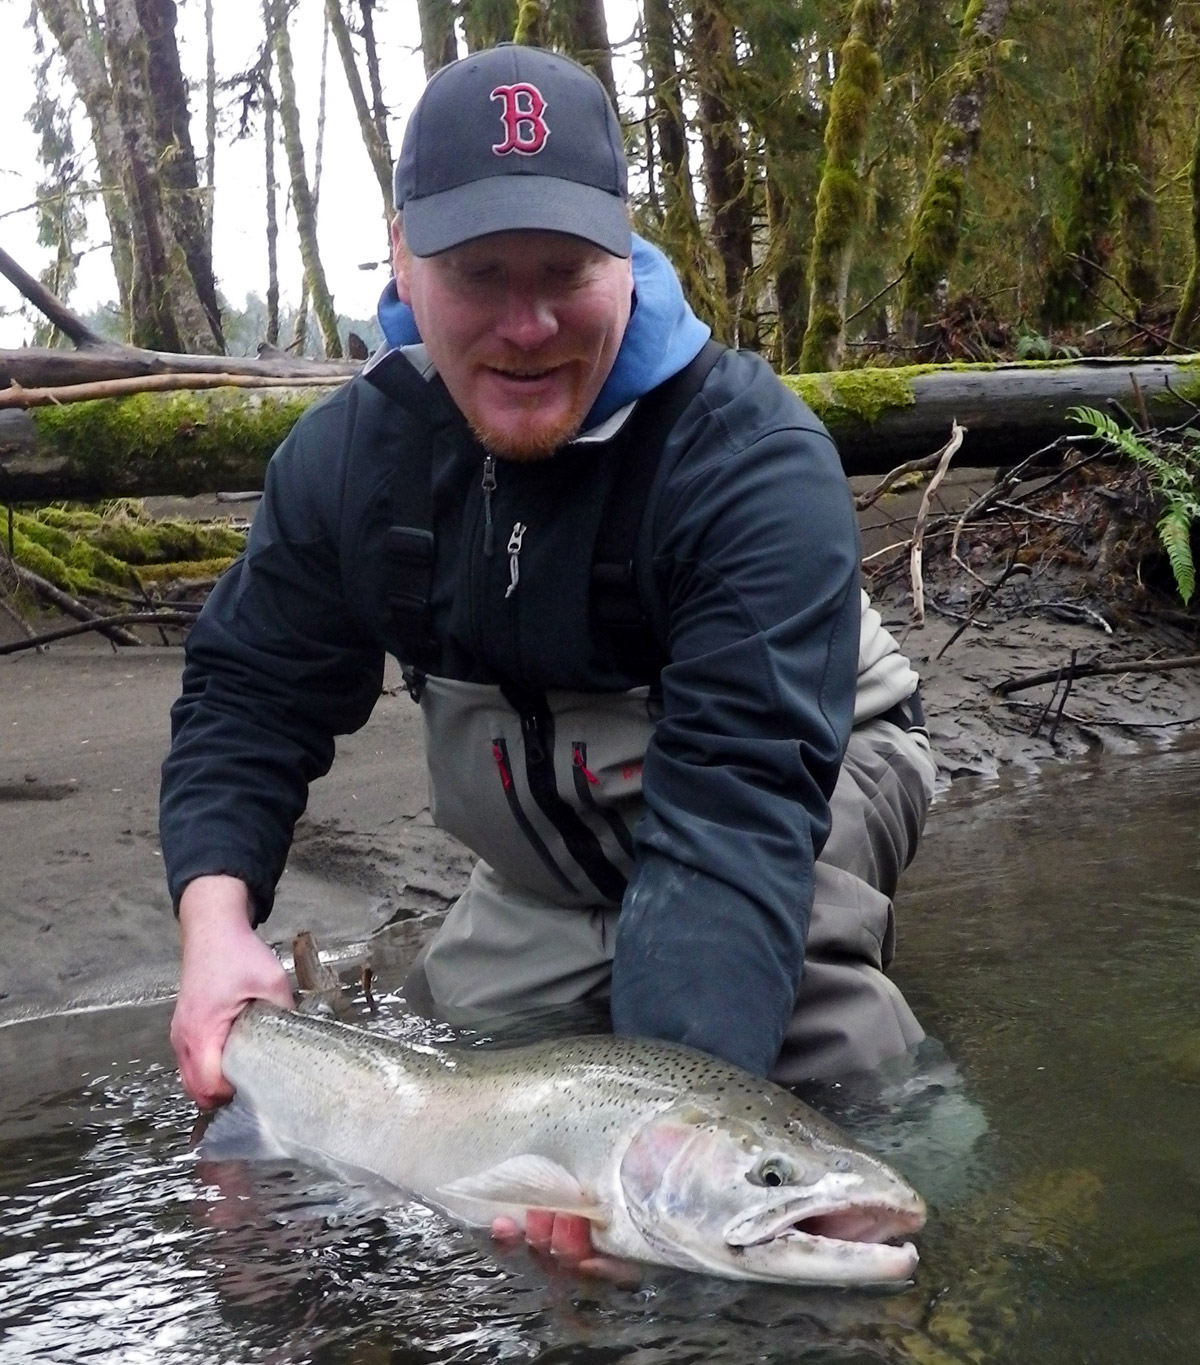 Kevin releases a Wild Steelhead during his first trip on the Clearwater River in Washington's Olympic Peninsula.